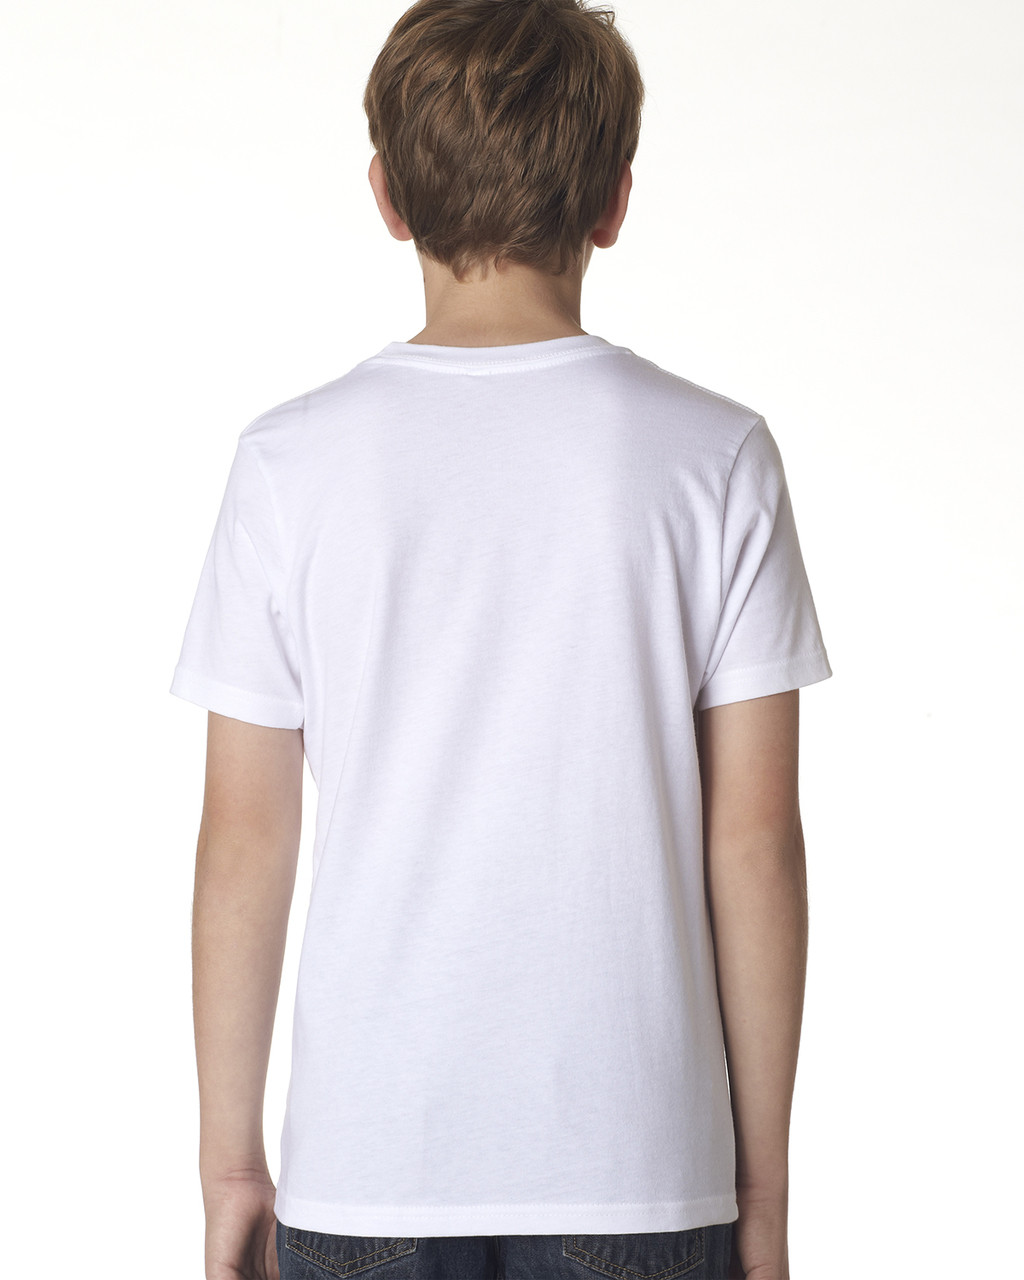 White, back 3310 Next Level Boys' Premium Crew Tee | Blankclothing.ca